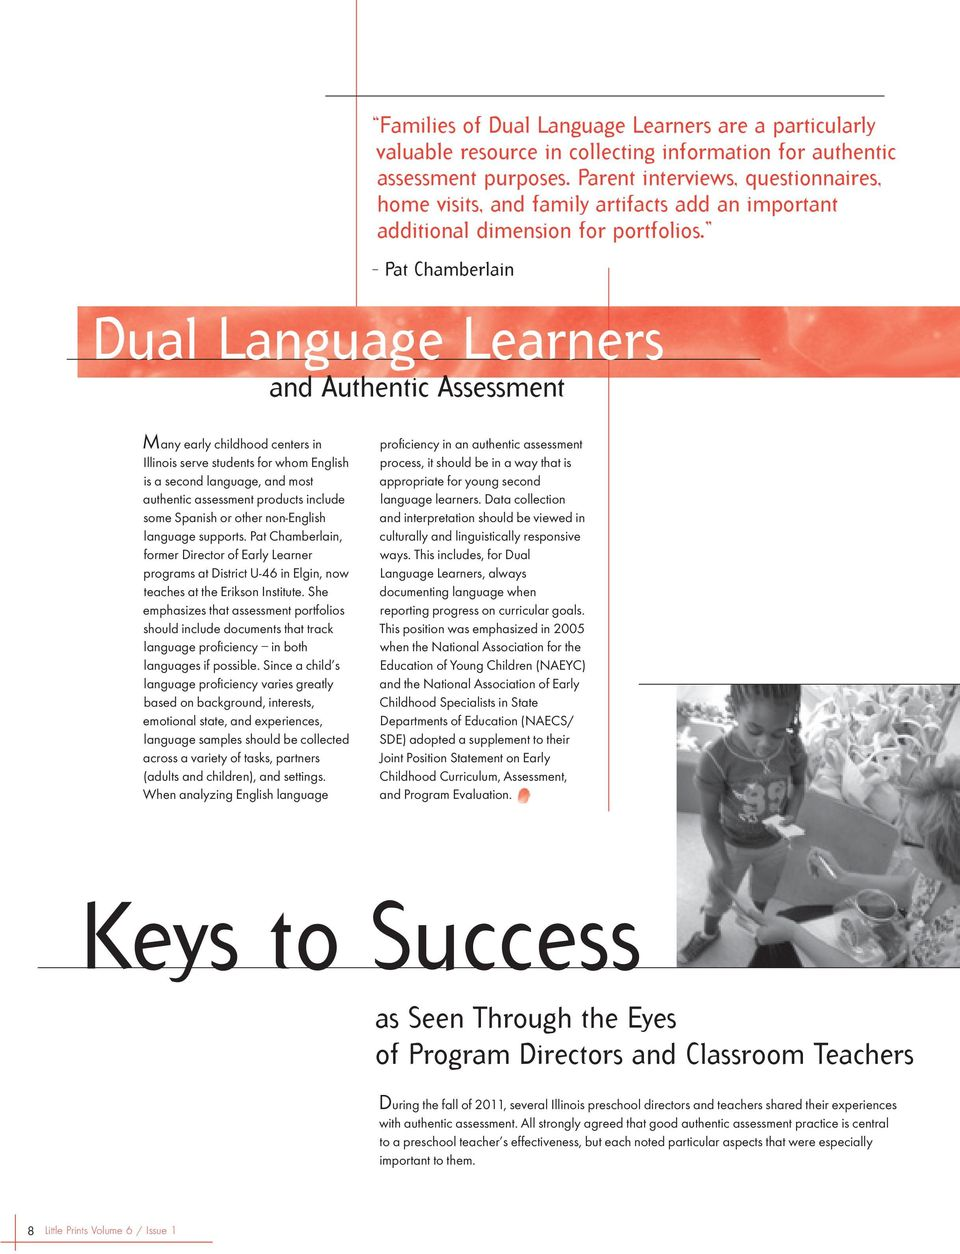 Pat Chamberlain Dual Language Learners and Authentic Assessment Many early childhood centers in Illinois serve students for whom English is a second language, and most authentic assessment products